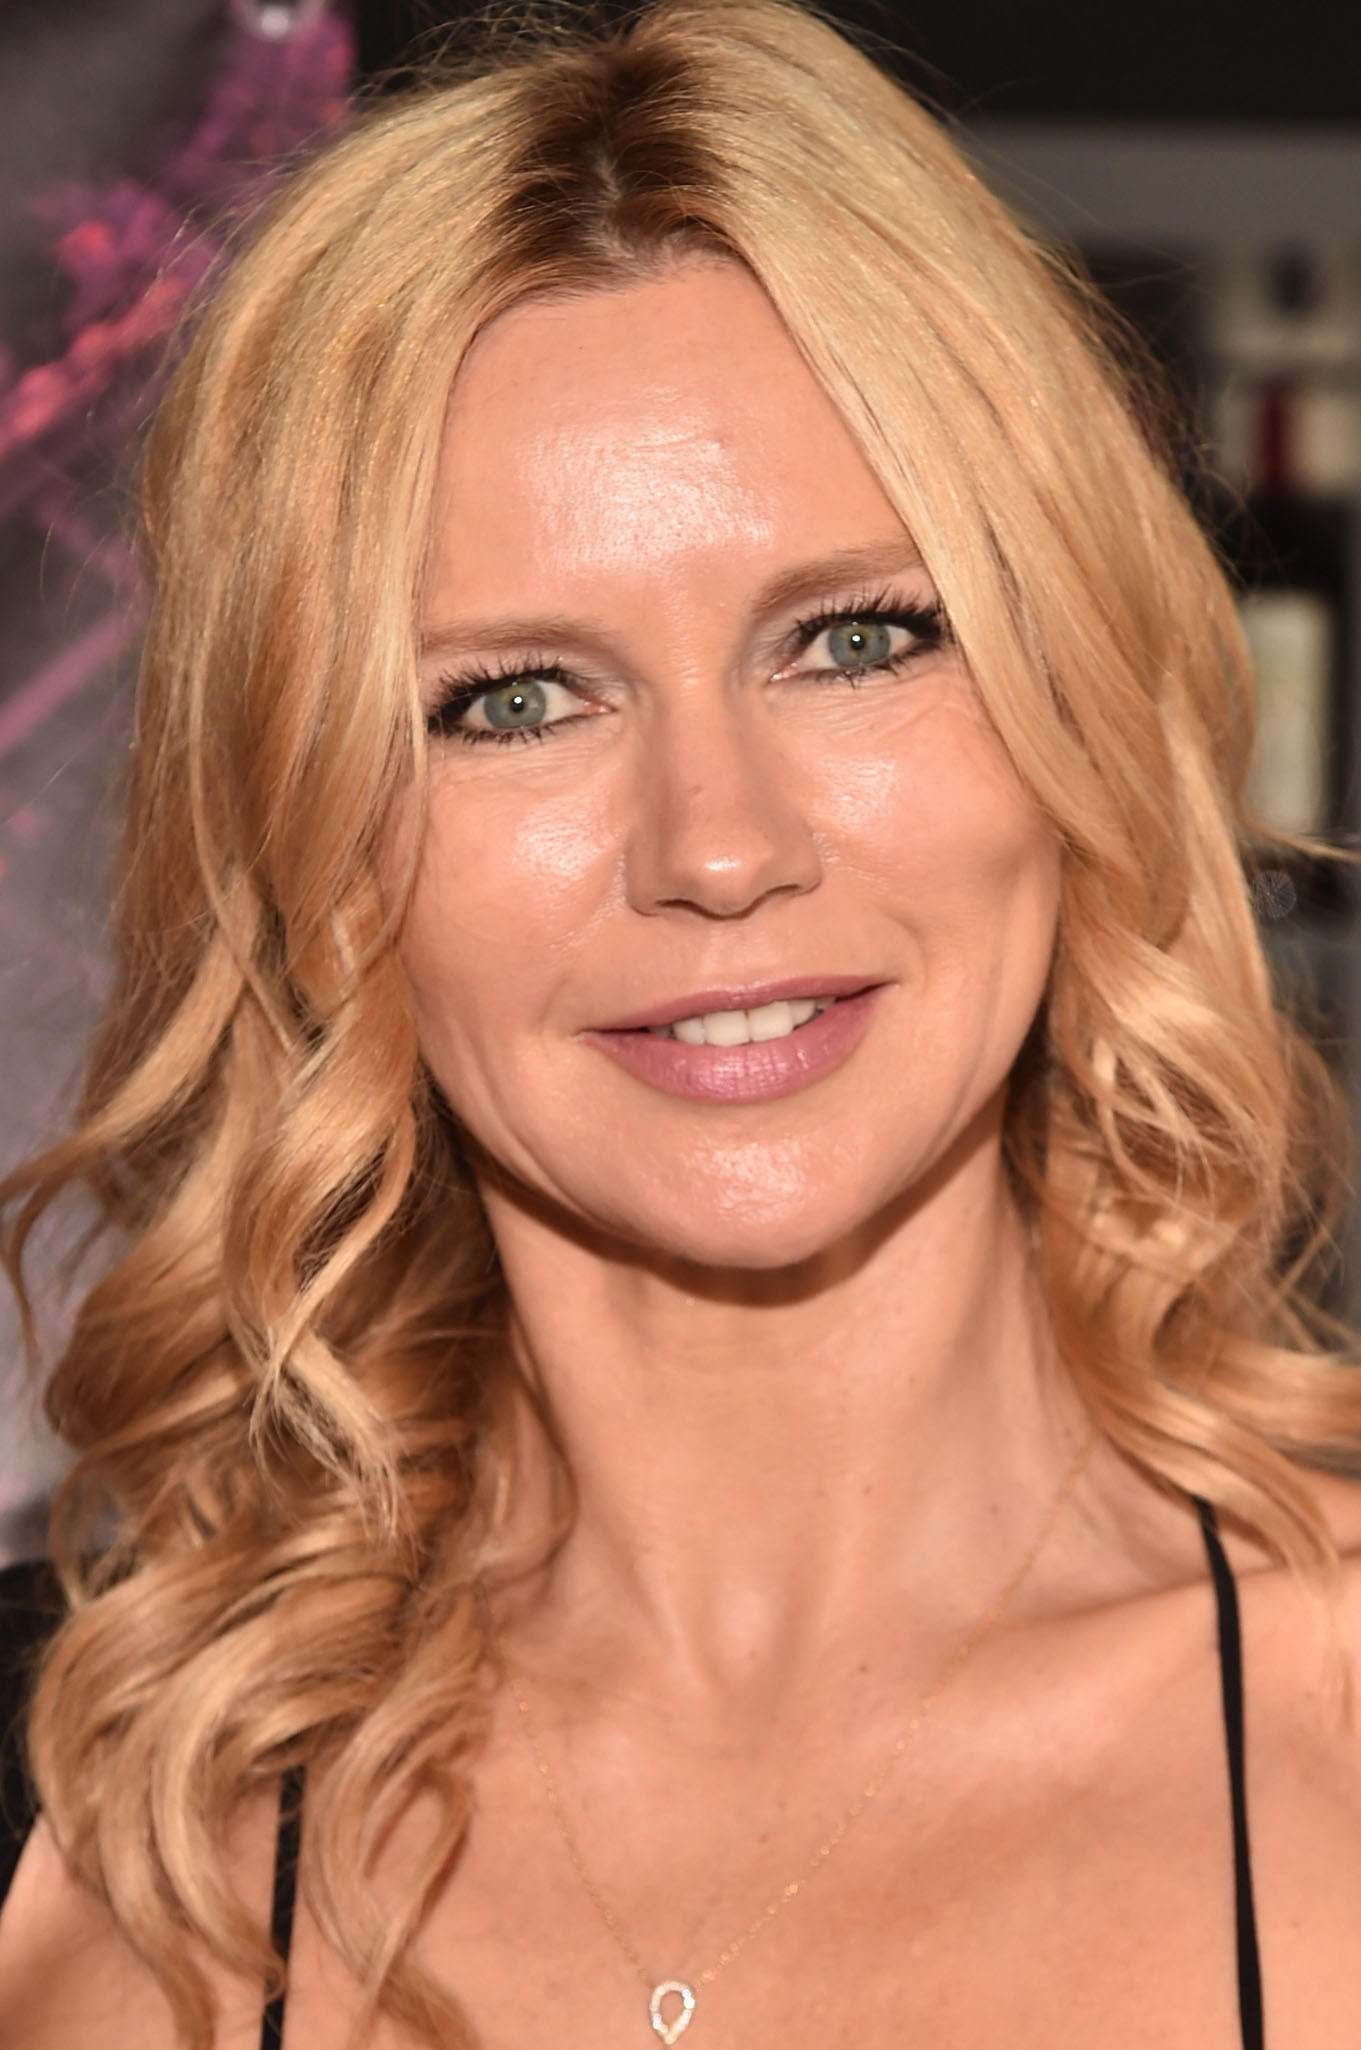 Veronica Ferres pay the ghost